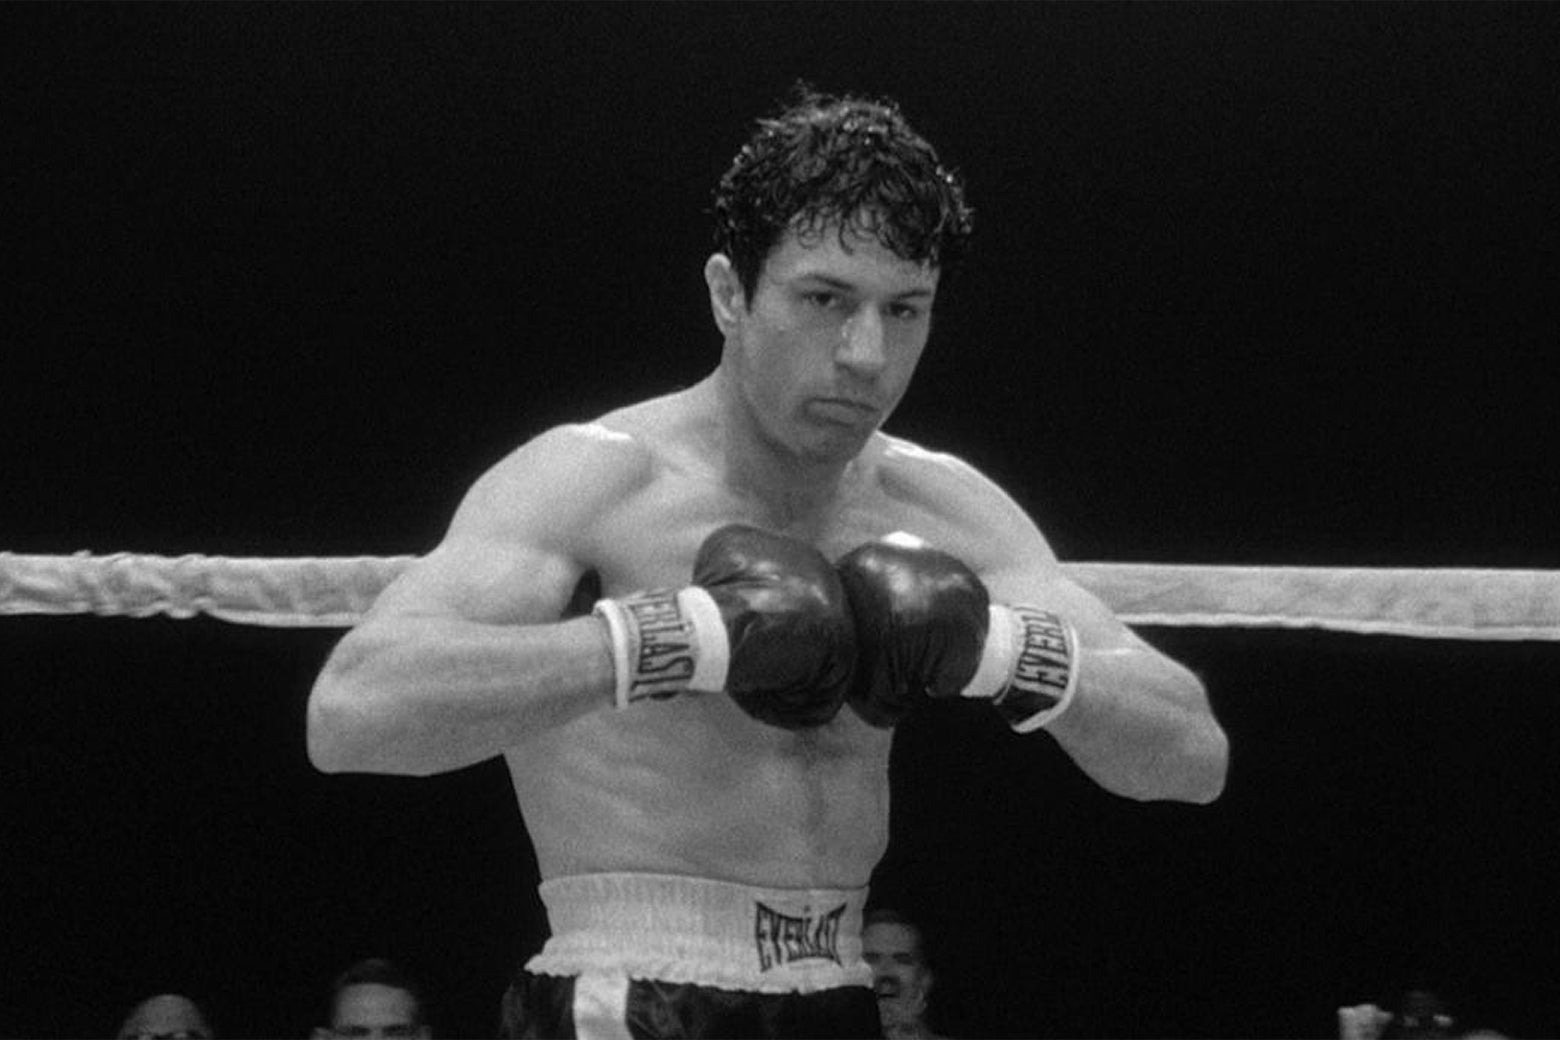 Robert De Niro in Raging Bull.